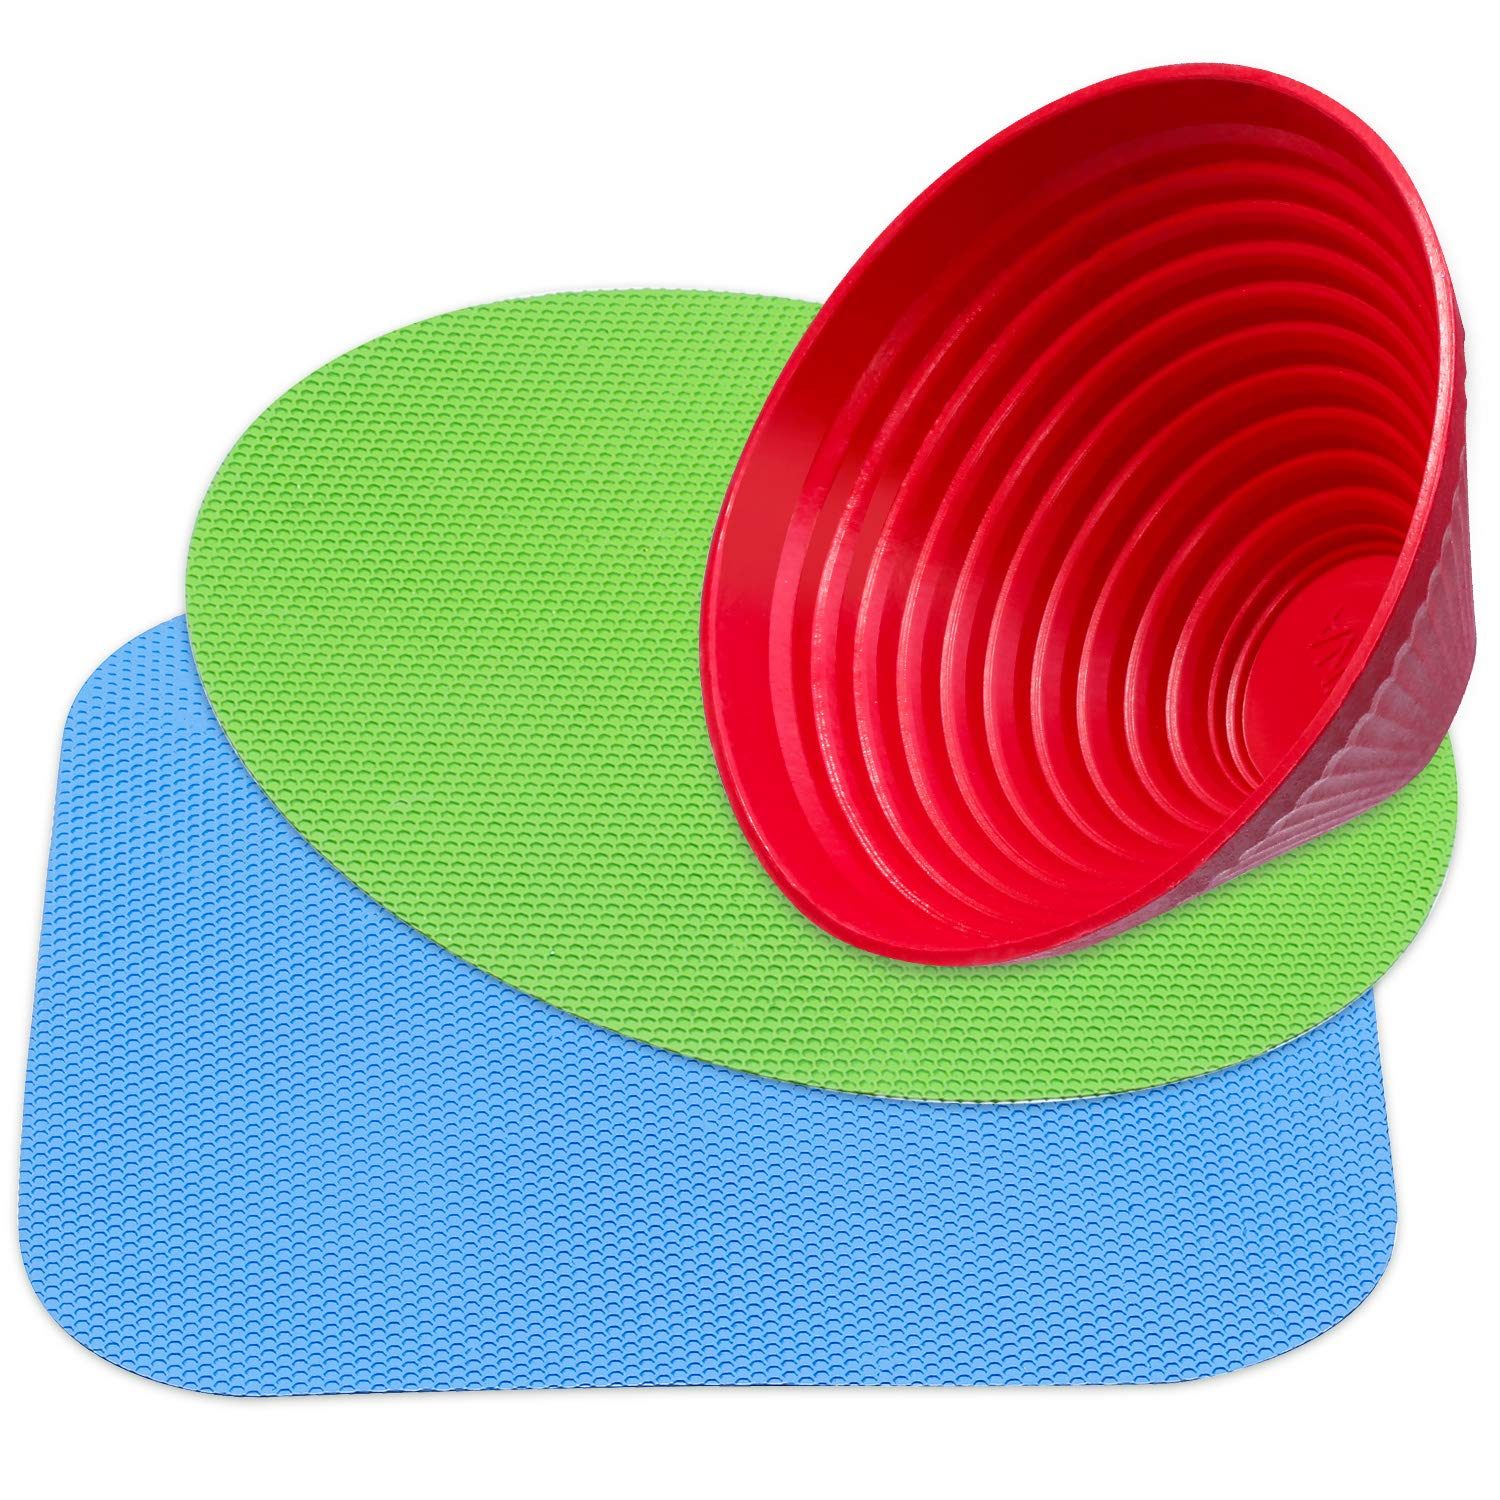 Chuangdi 9 Pieces Rubber Jar Grips Jar Gripper Pad Bottle Lid Opener Kitchen Coasters Multicolored